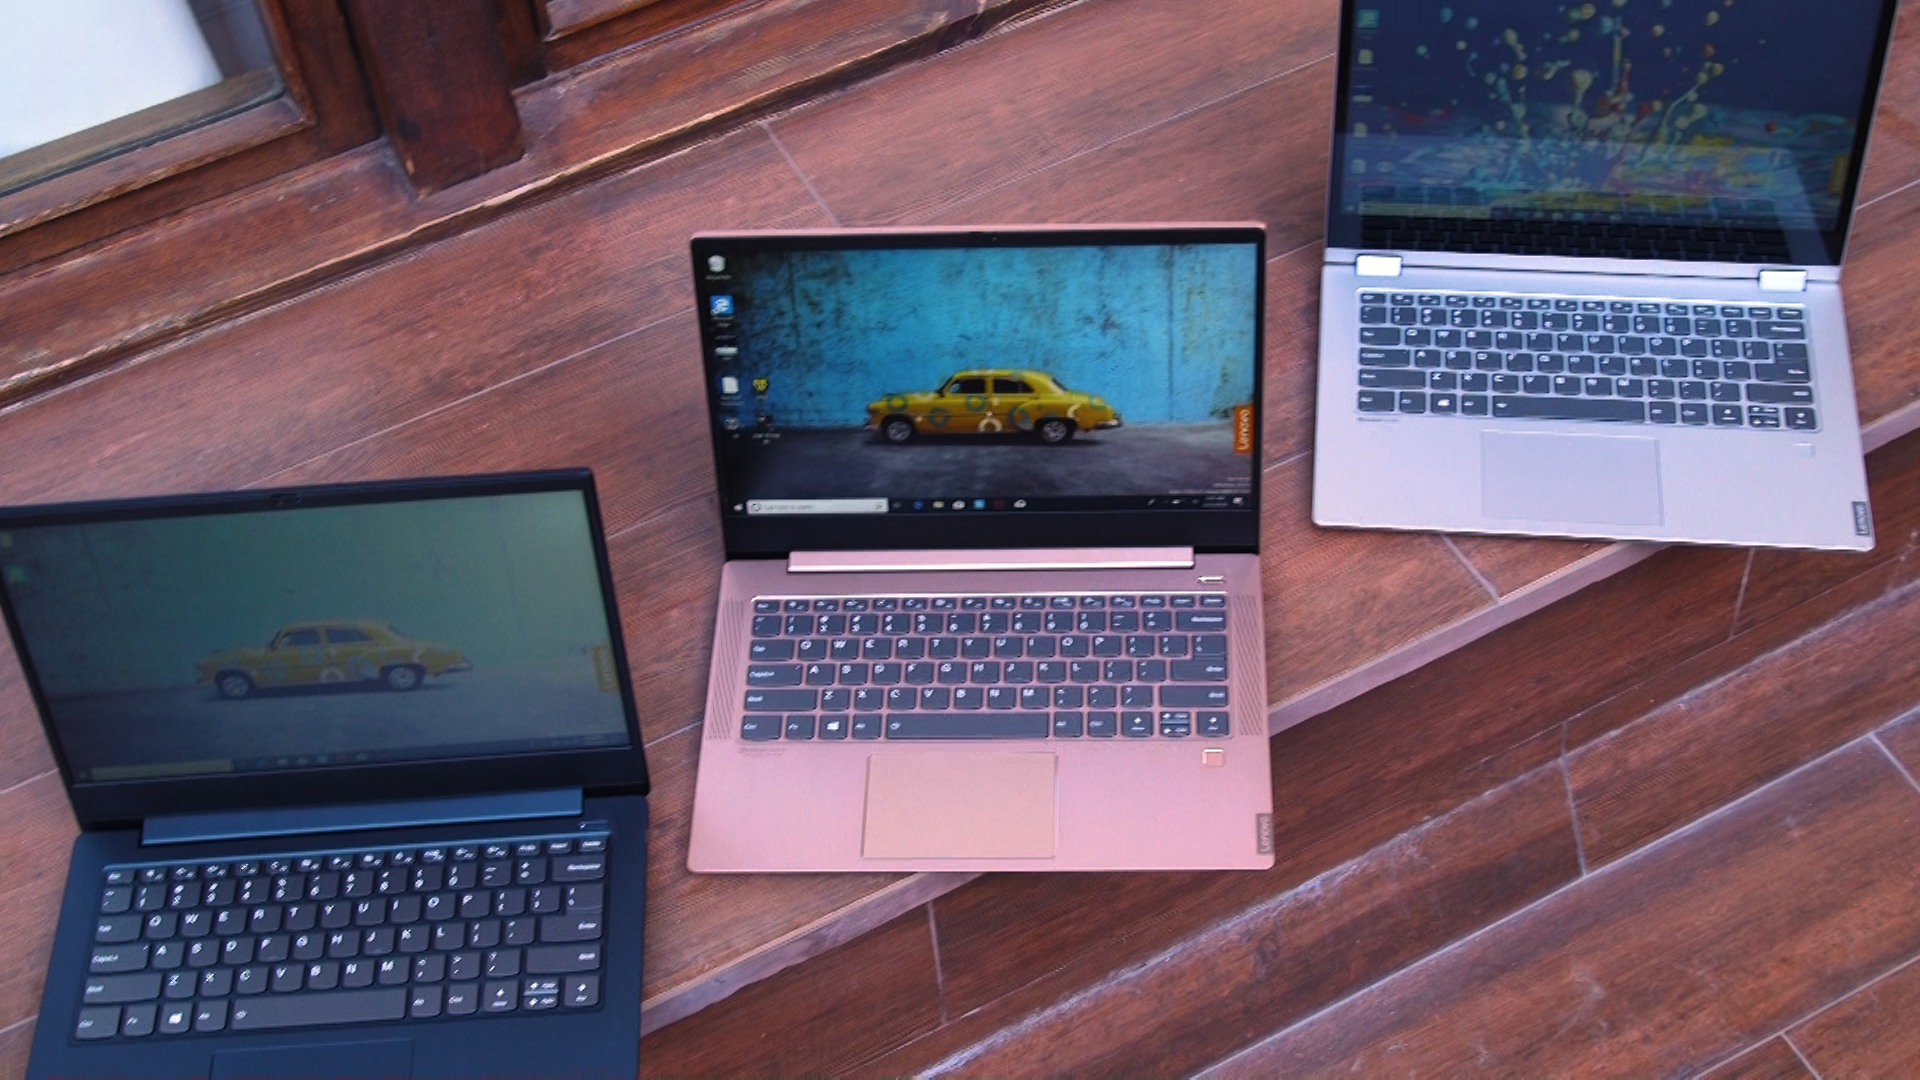 Video: Lenovo's consumer MWC laptops deliver customization galore